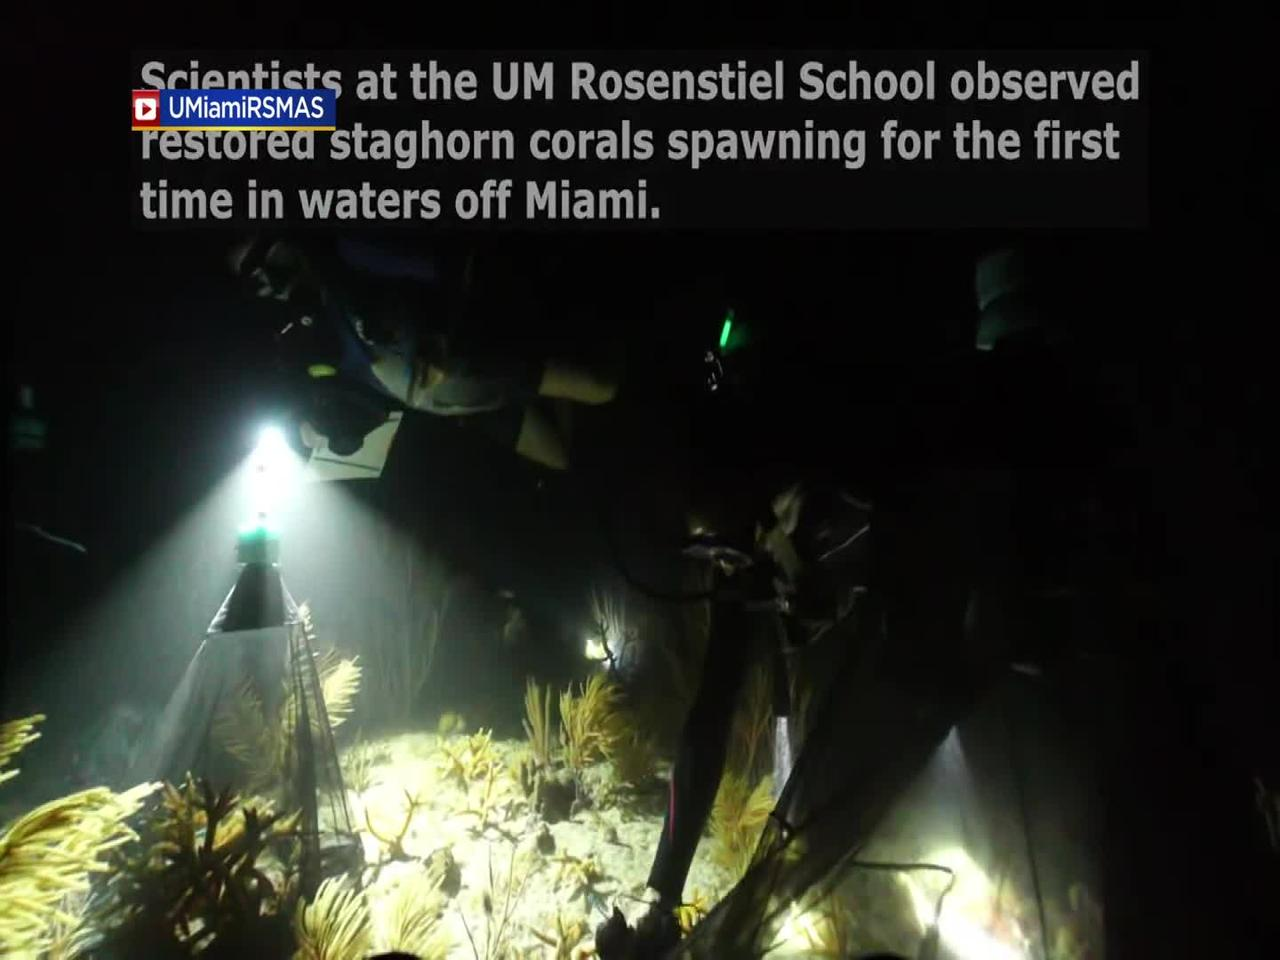 WEB EXTRA: Restored Corals Observed Spawning for the First Time in Waters Off Miami